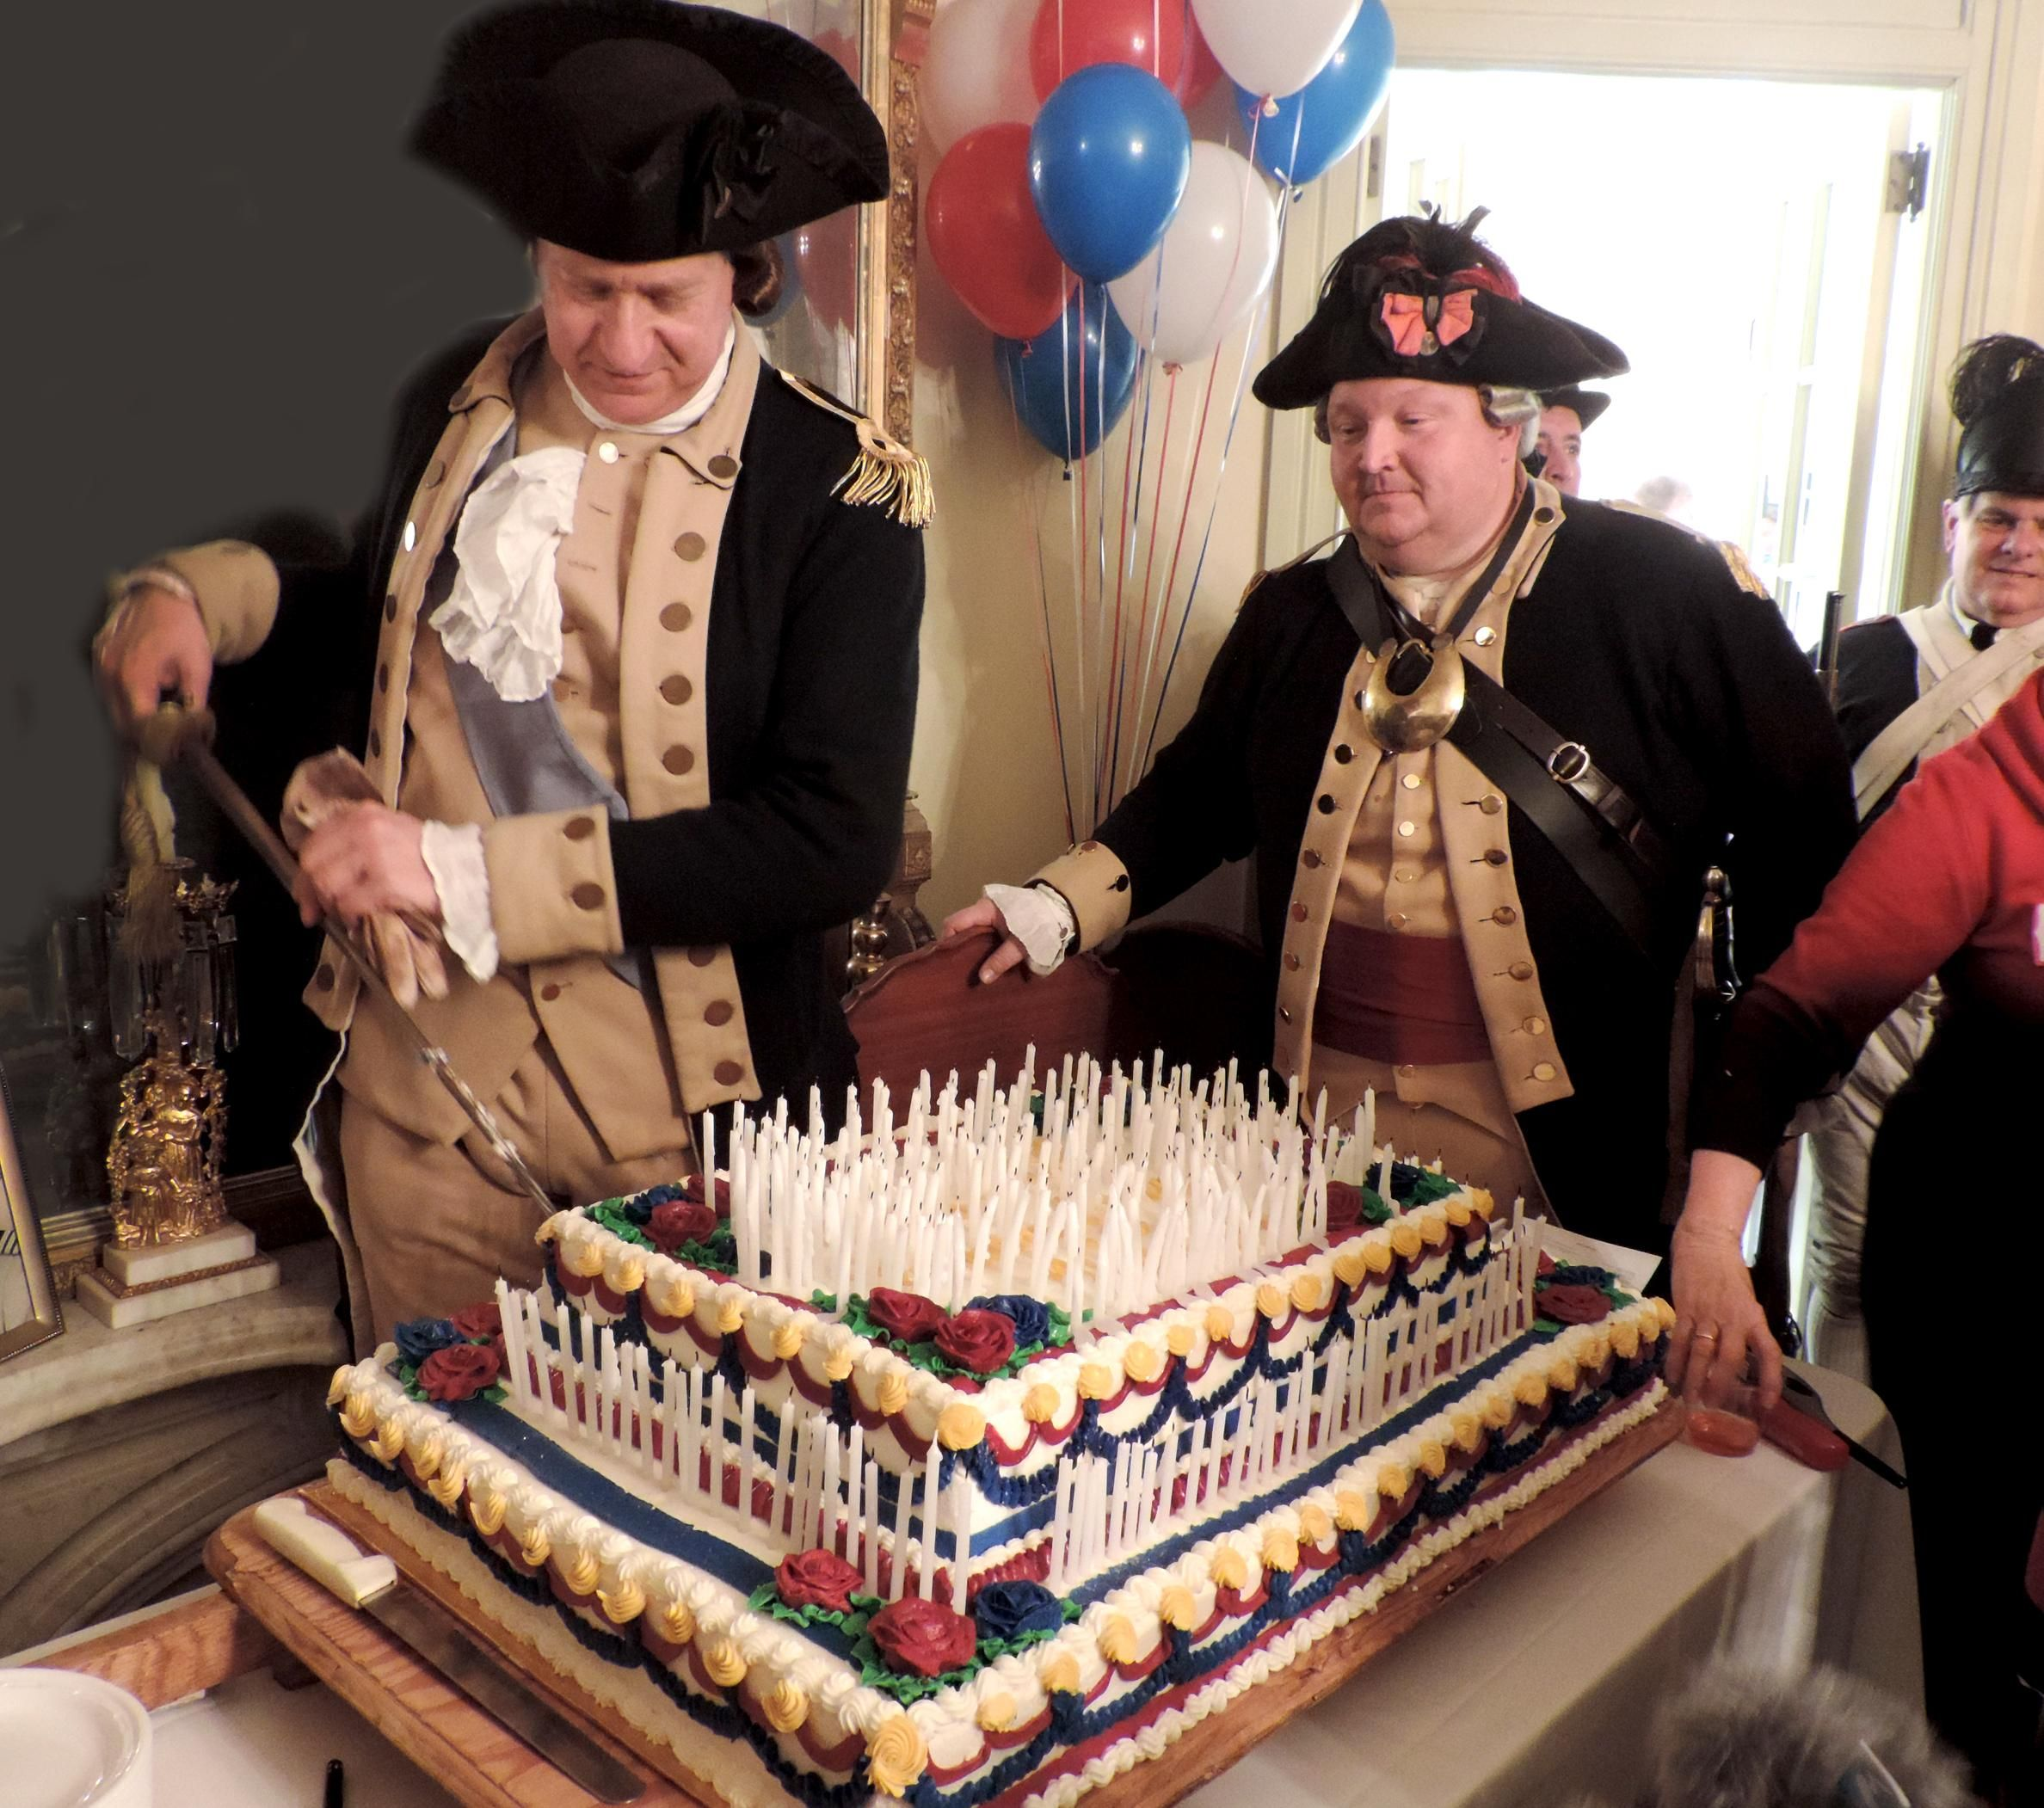 Using A Sword George Washington John Godzieba Cuts The First Piece Of His Birthday Cake Photo By Petra Chesner Schlatter